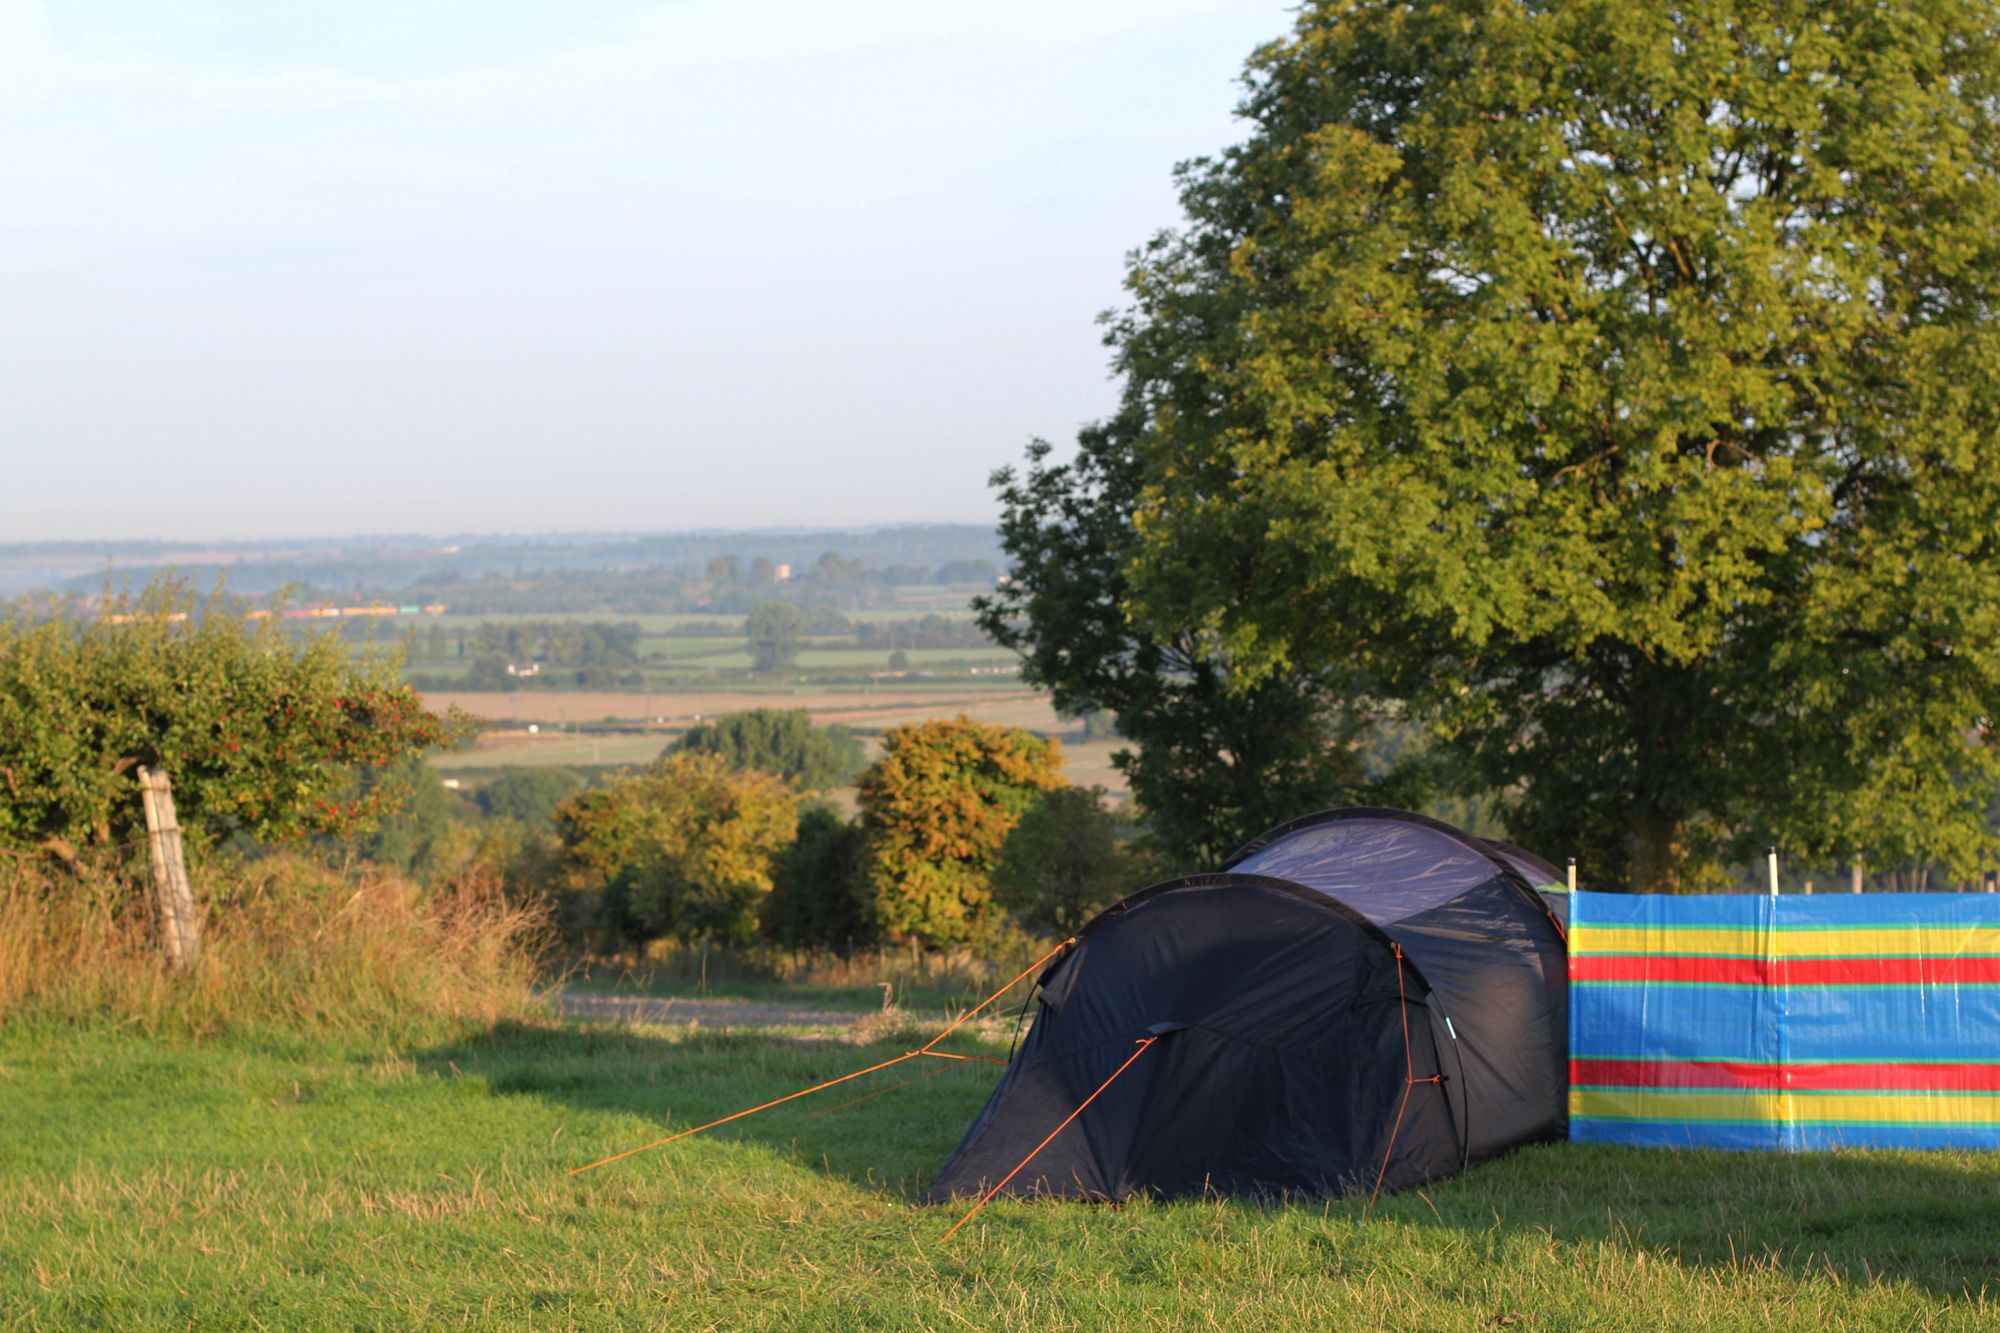 Campsites in the Chiltern Hills – Recommended camping sites in the Chilterns – Cool Camping